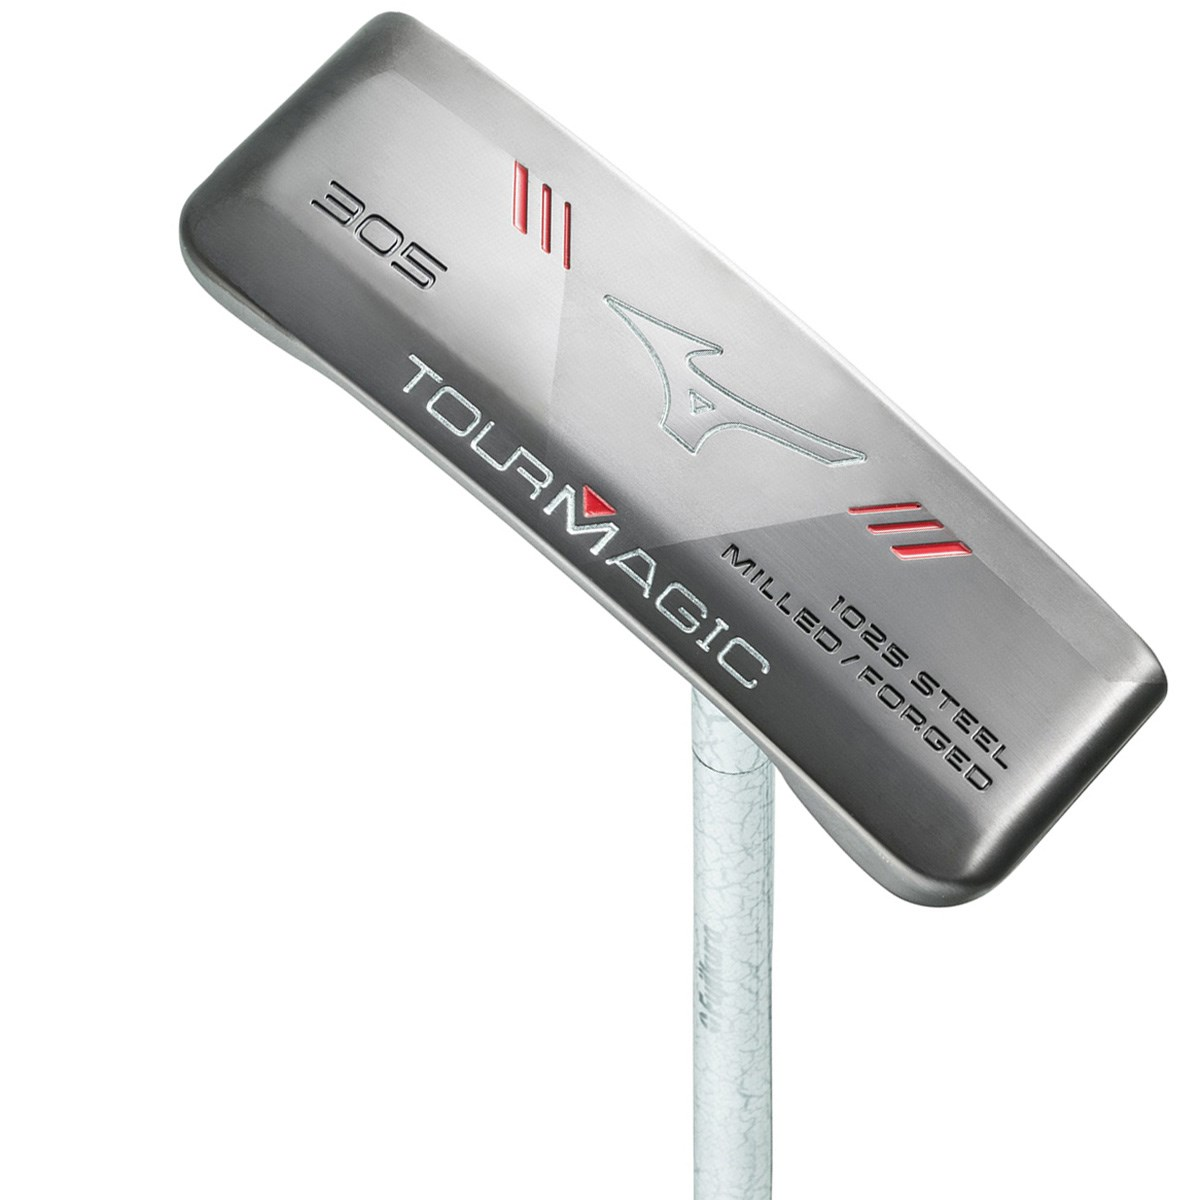 ミズノ(MIZUNO) TOUR MAGIC 305 パター ローズIP仕上げ FUJIKURA MC Putter